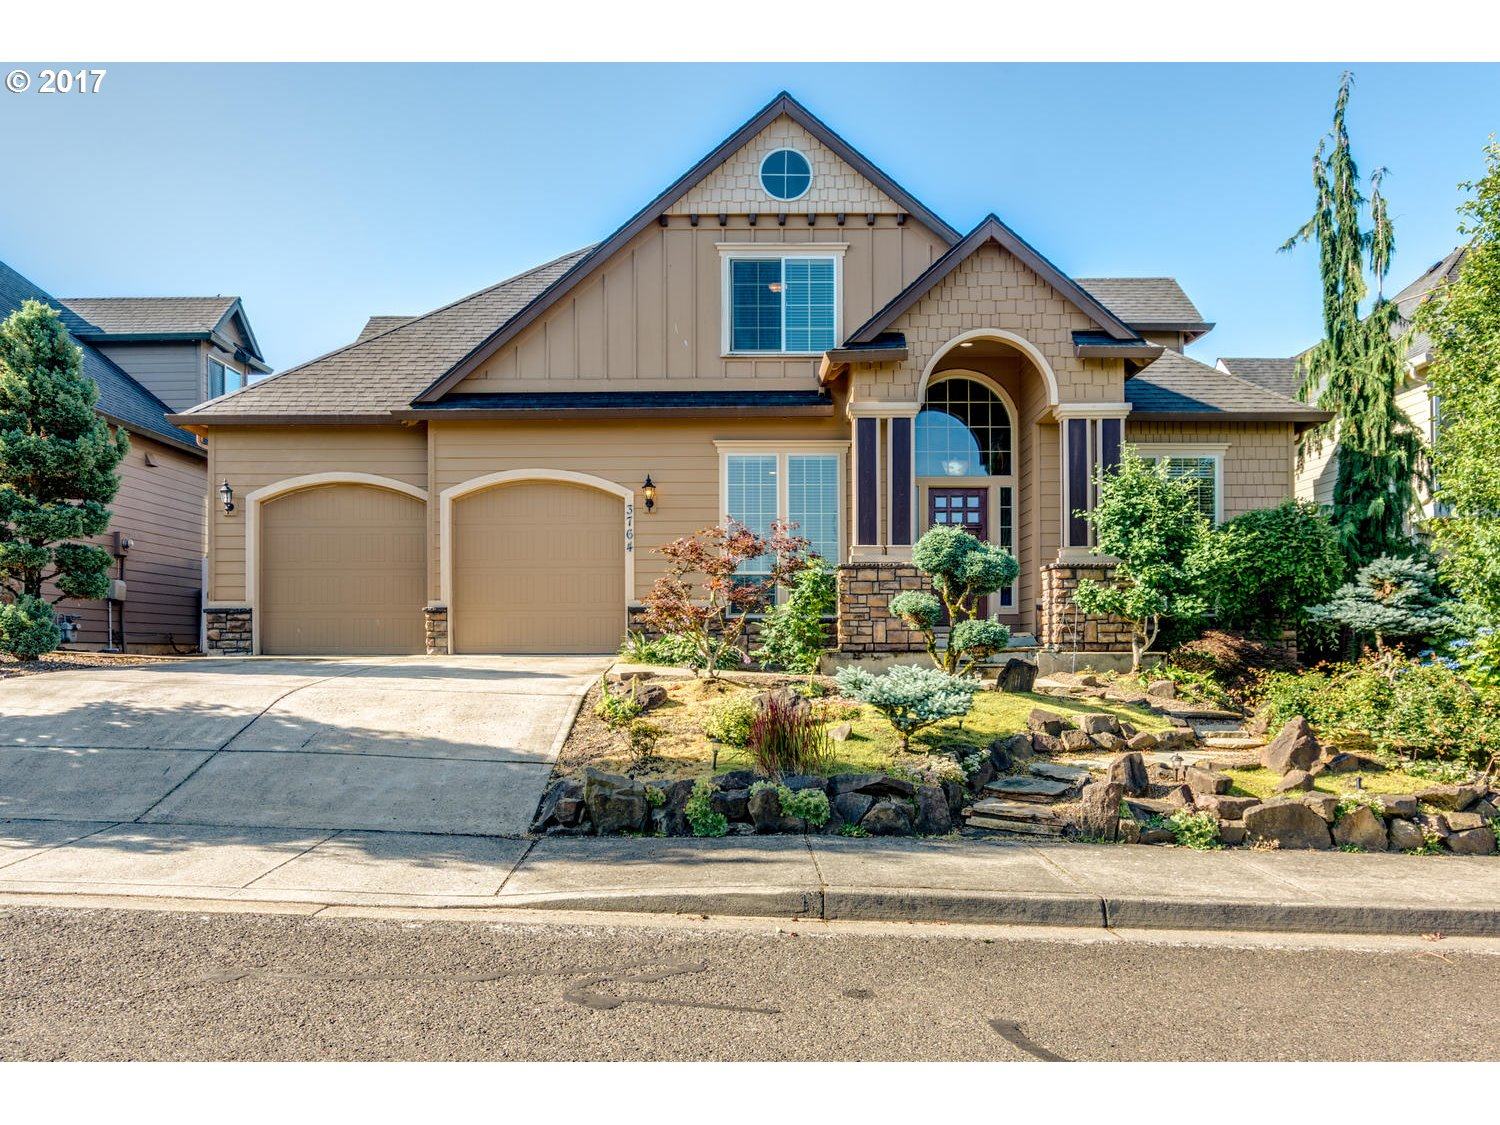 3764 FOREST VIEW DR, Washougal, WA 98671